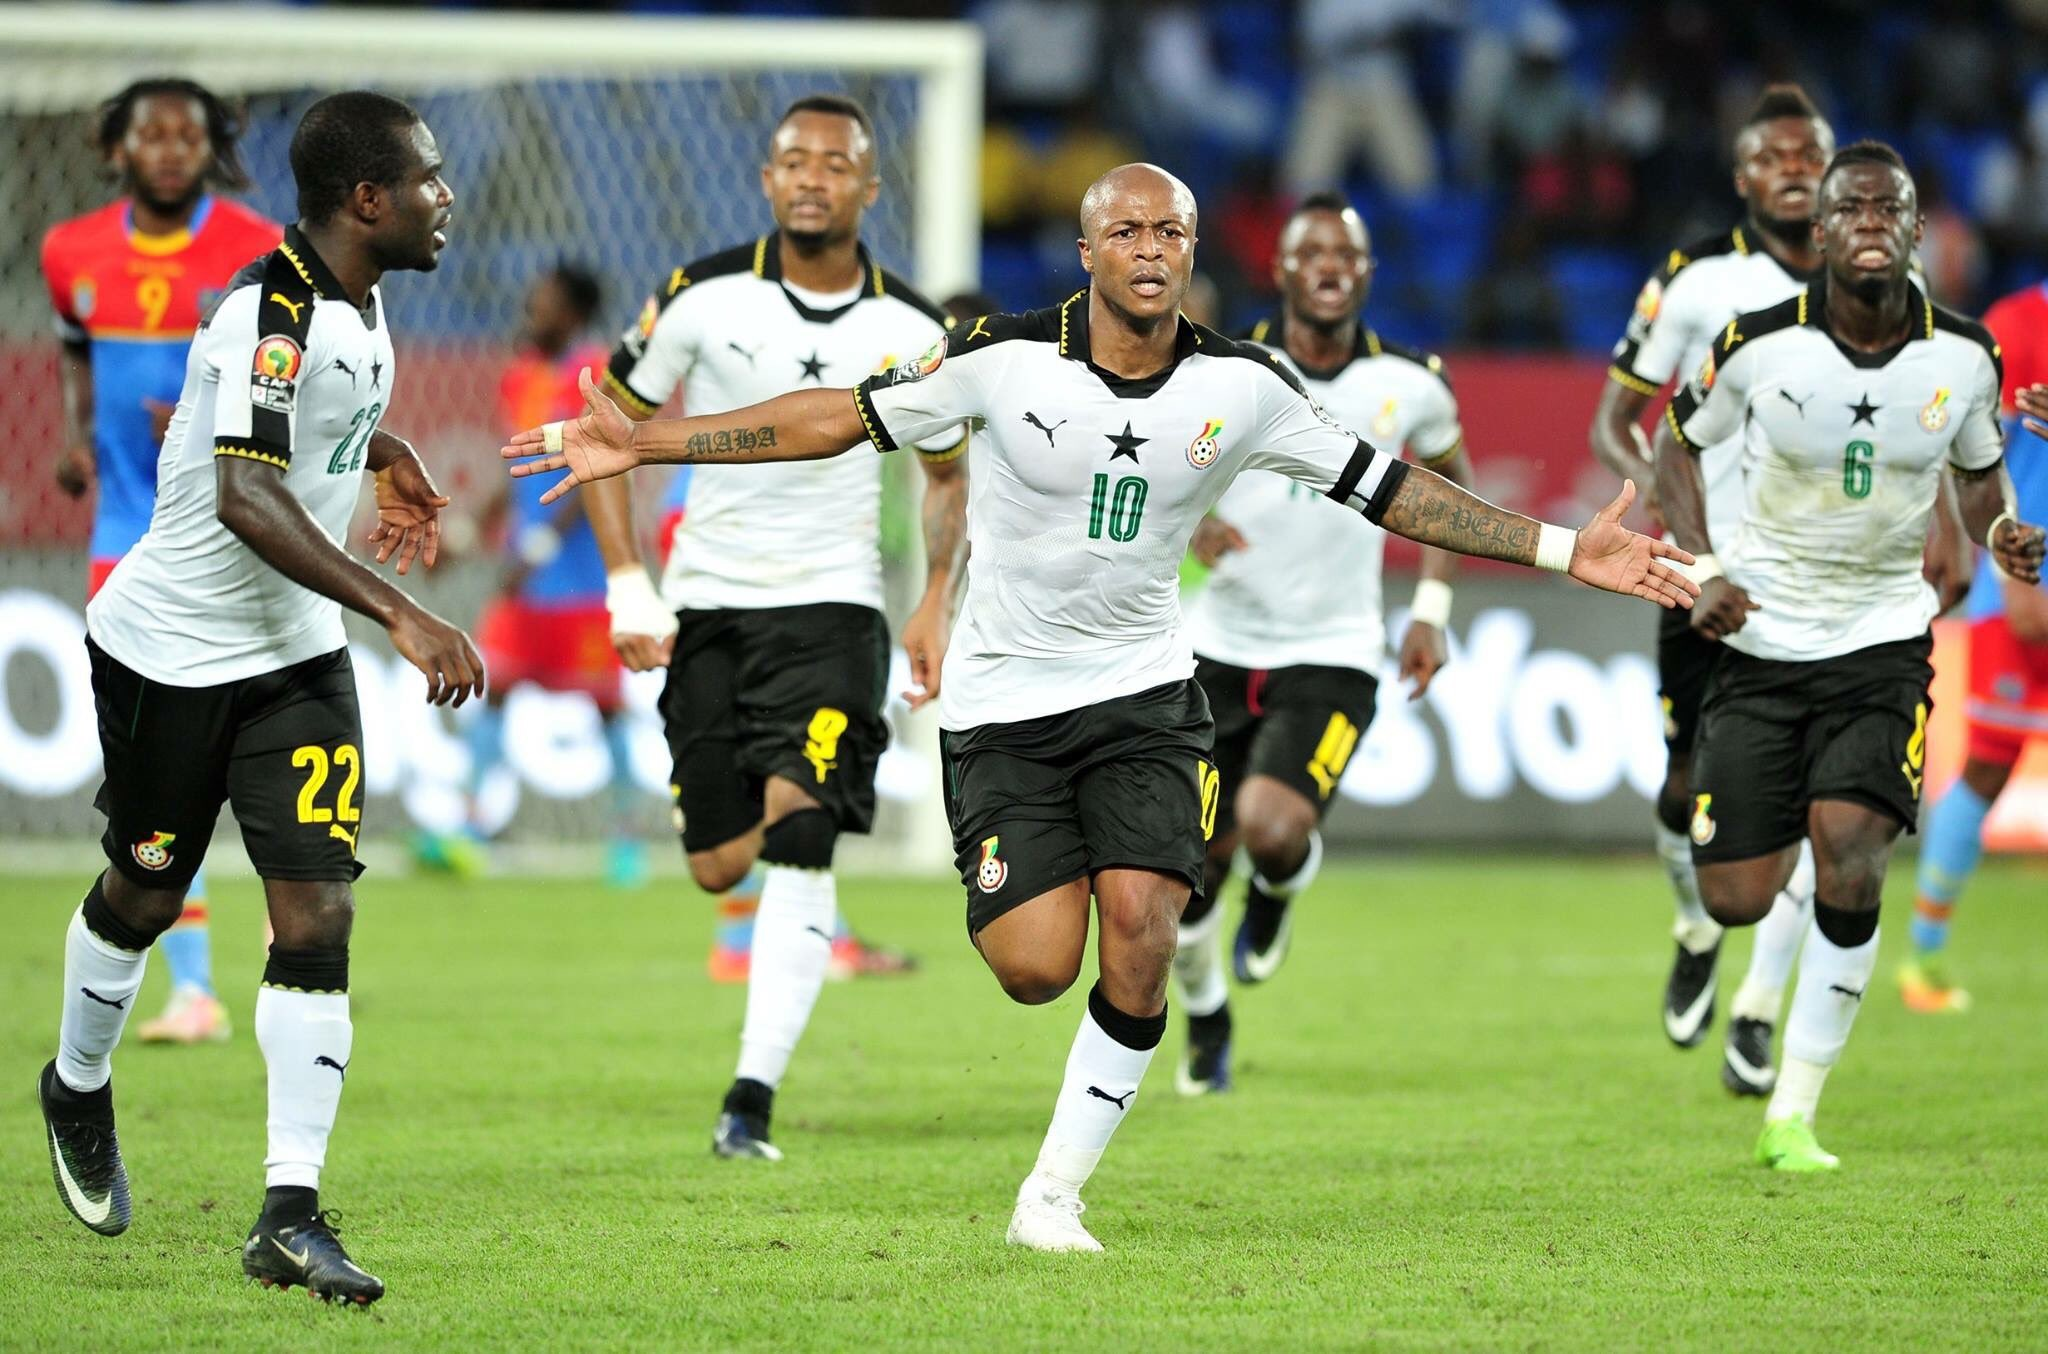 AFCON 2017: Ayew Brothers Score As Ghana Edge DR Congo, Reach Semis